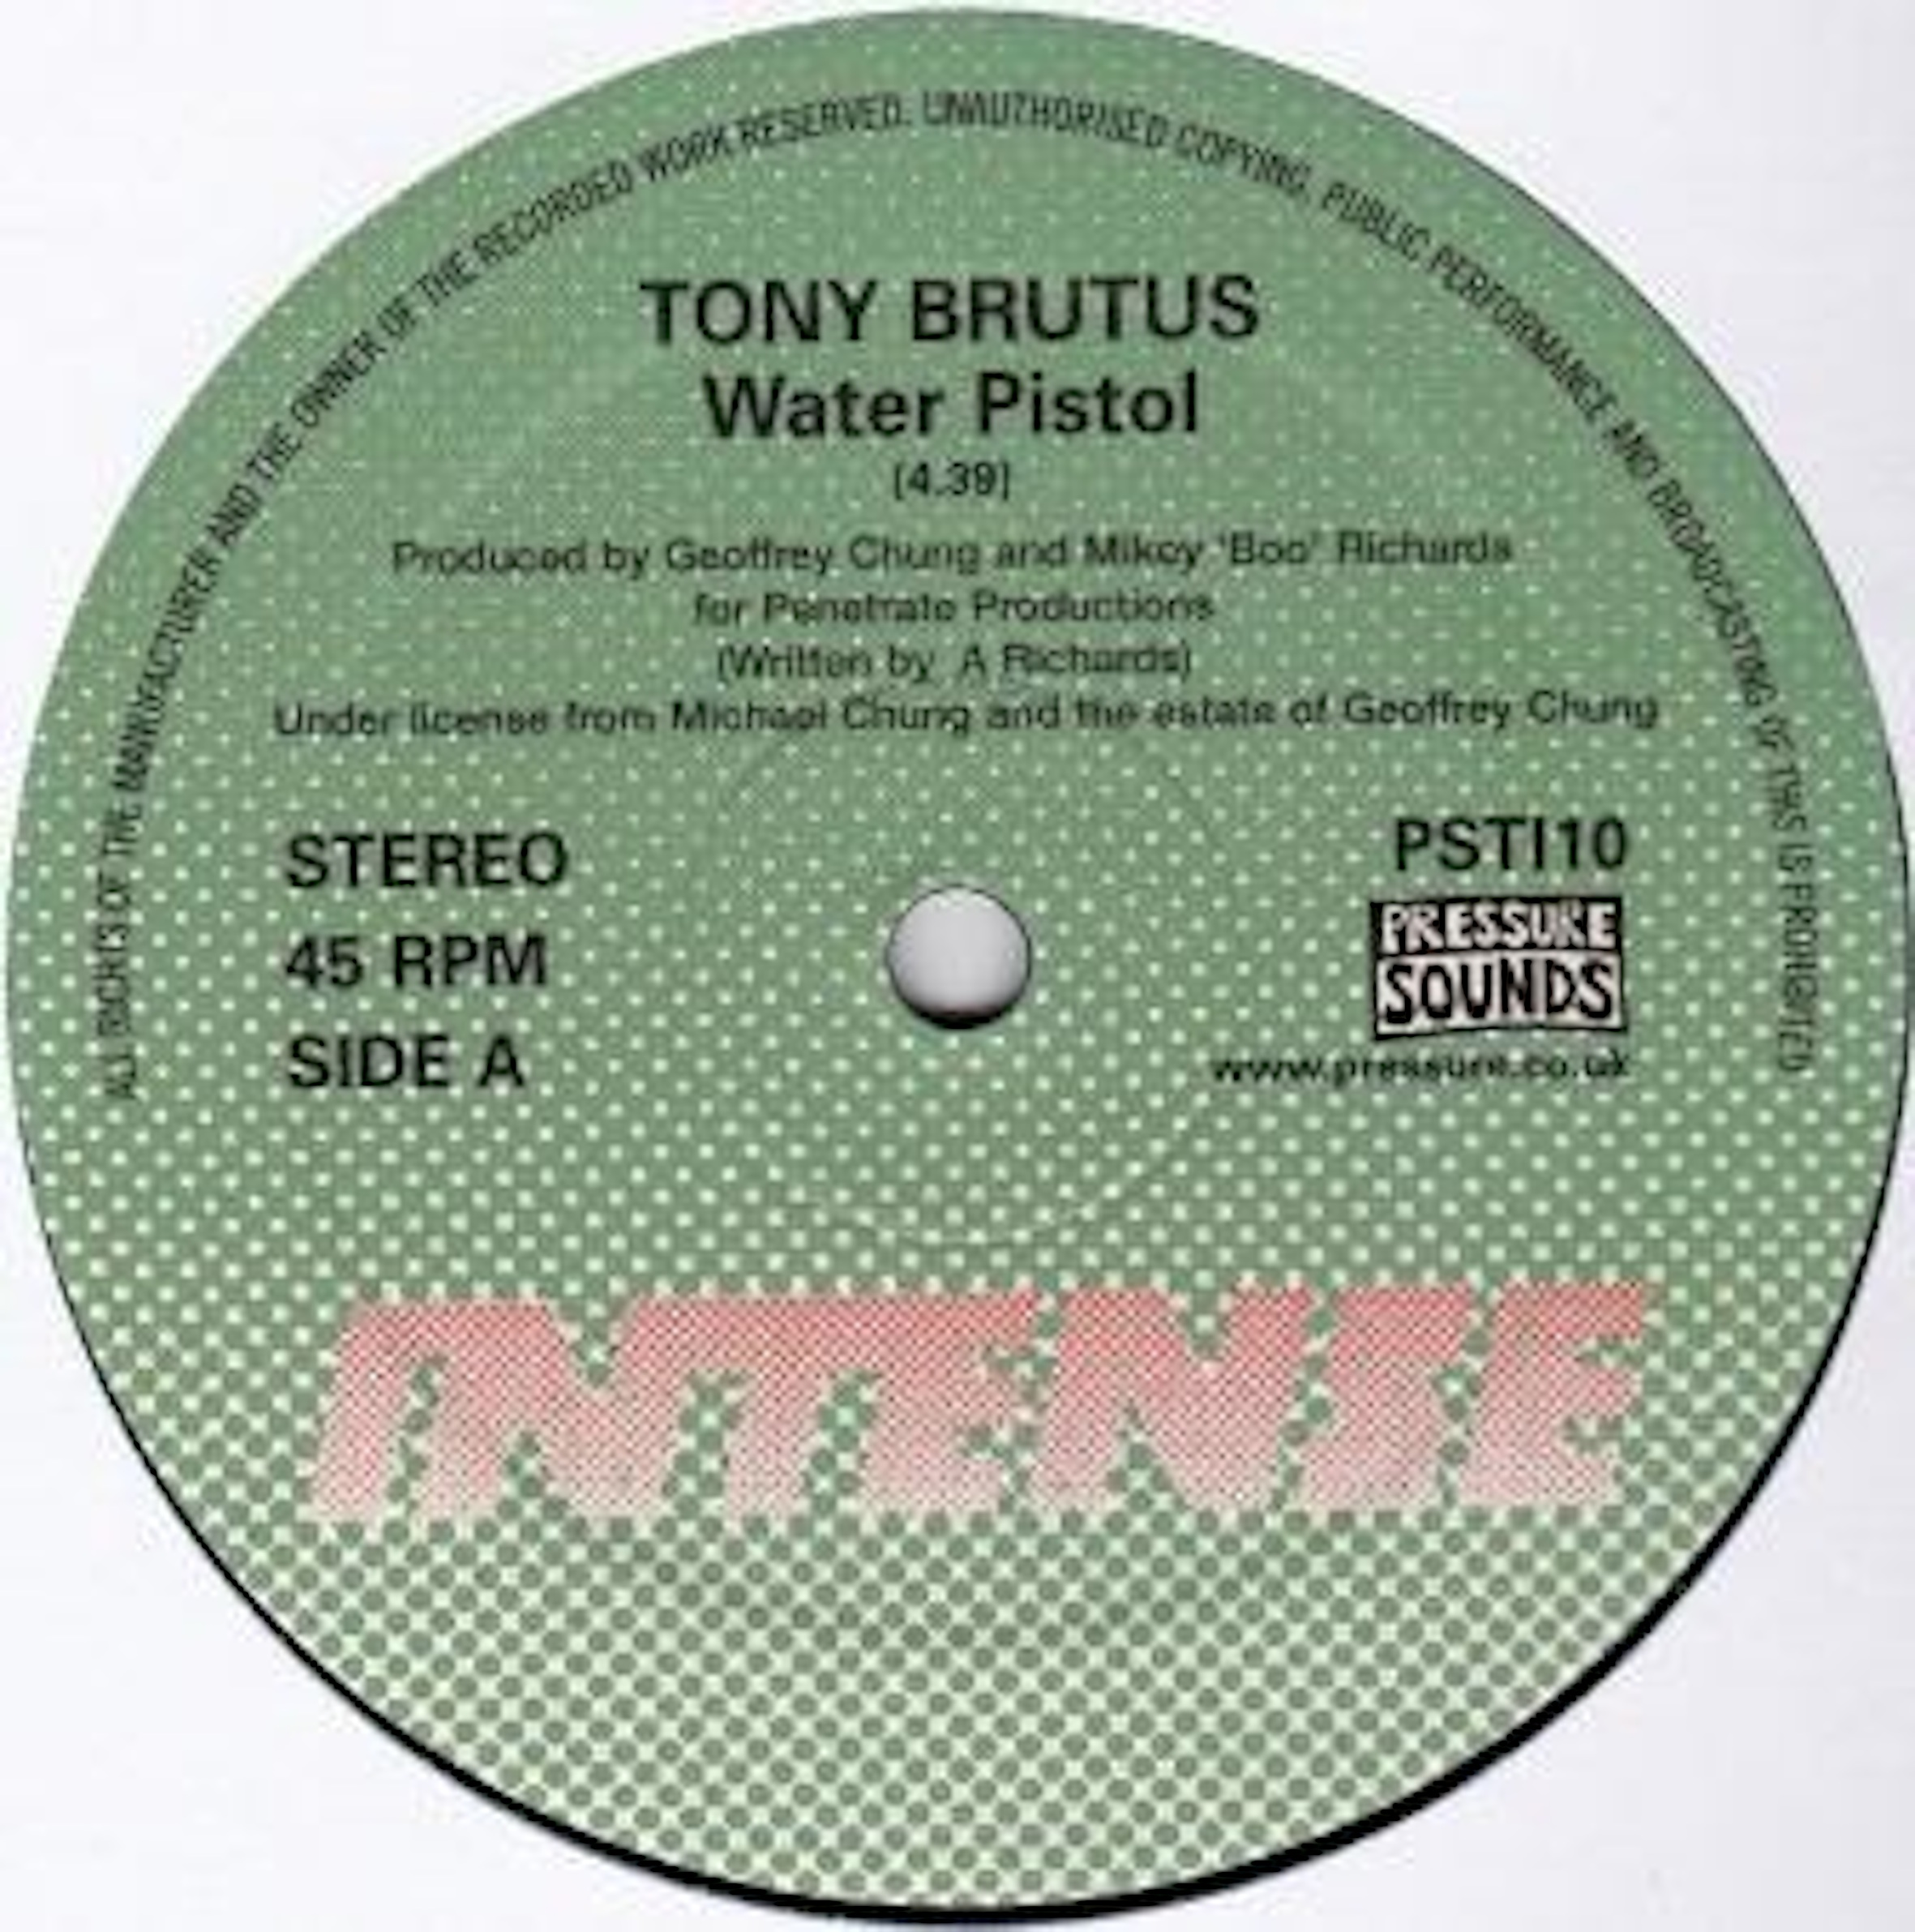 Tracks, On The Rebound, Tony Brutus, Test Pressing, Dr Rob, Pressure Sounds, Water Pistol, Intense